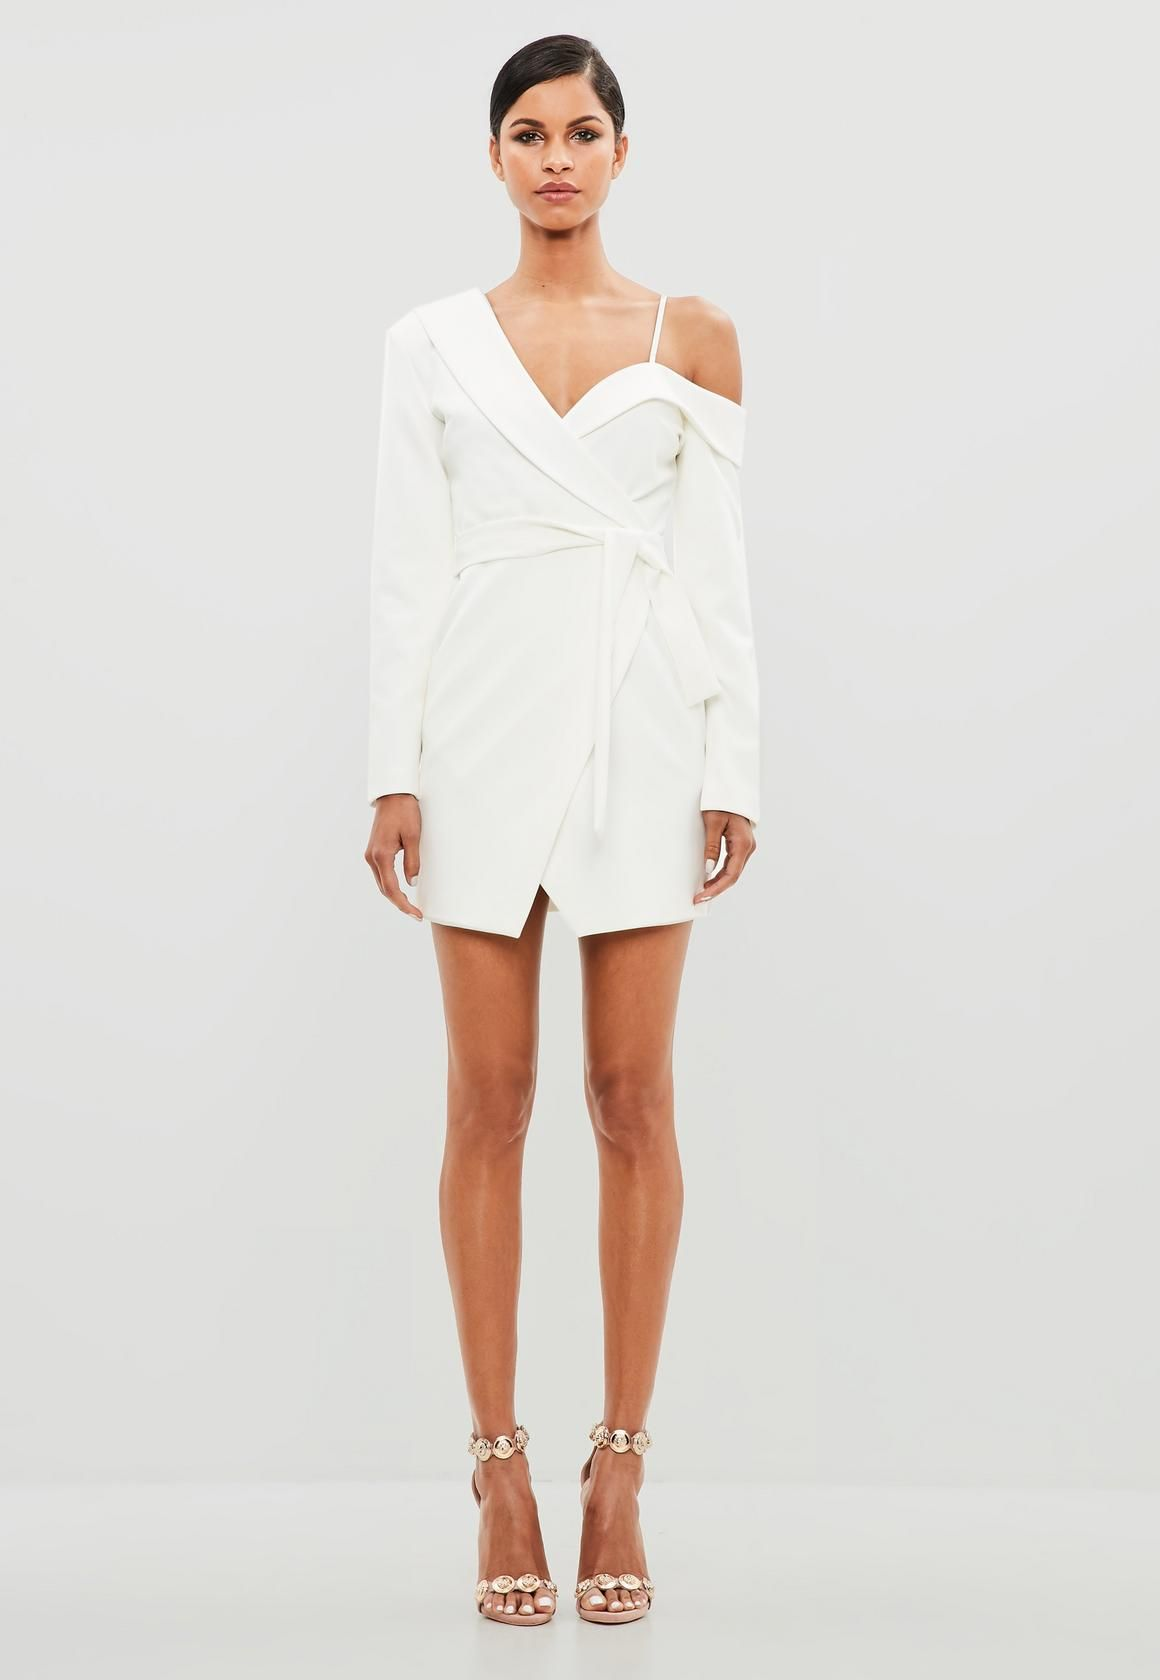 This Dress Features In A White Hue With A One Shoulder Neckline And And A Tie Waist With Long Sleeves Stylish Winter Outfits Outfits Versace Prom Dress [ 1680 x 1160 Pixel ]